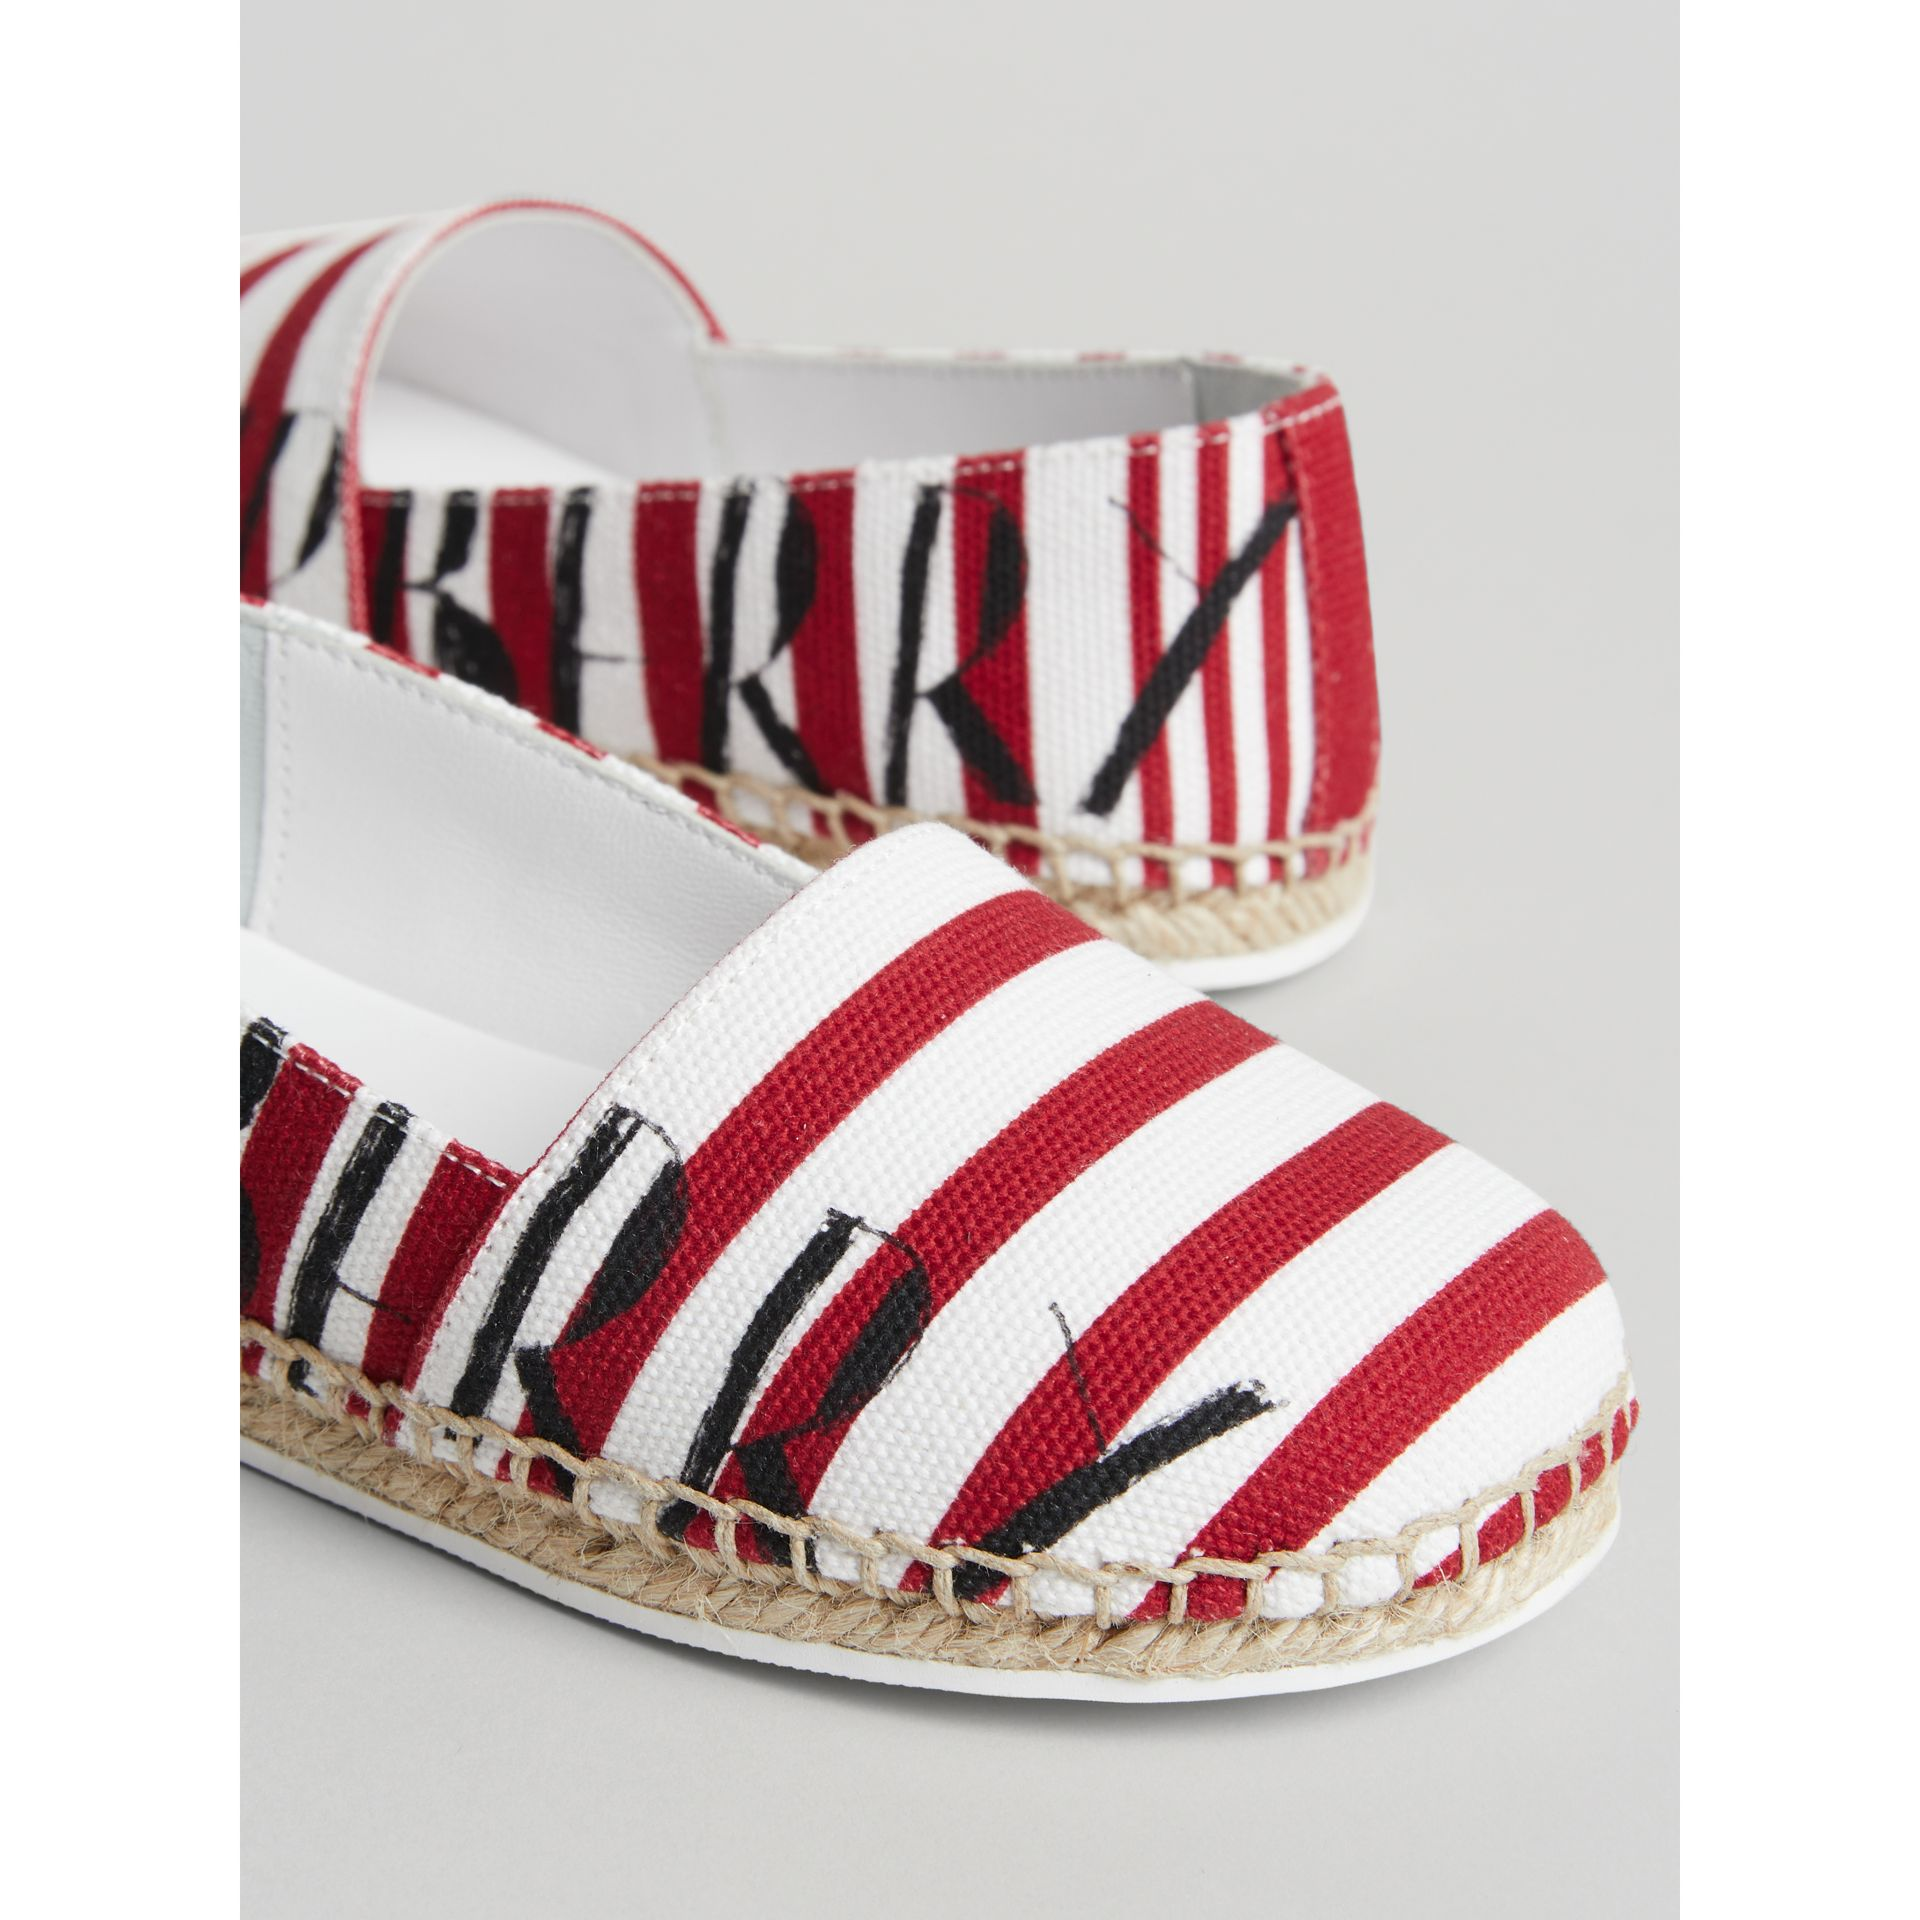 SW1 Print Striped Cotton Espadrilles in Bright Red | Burberry - gallery image 1